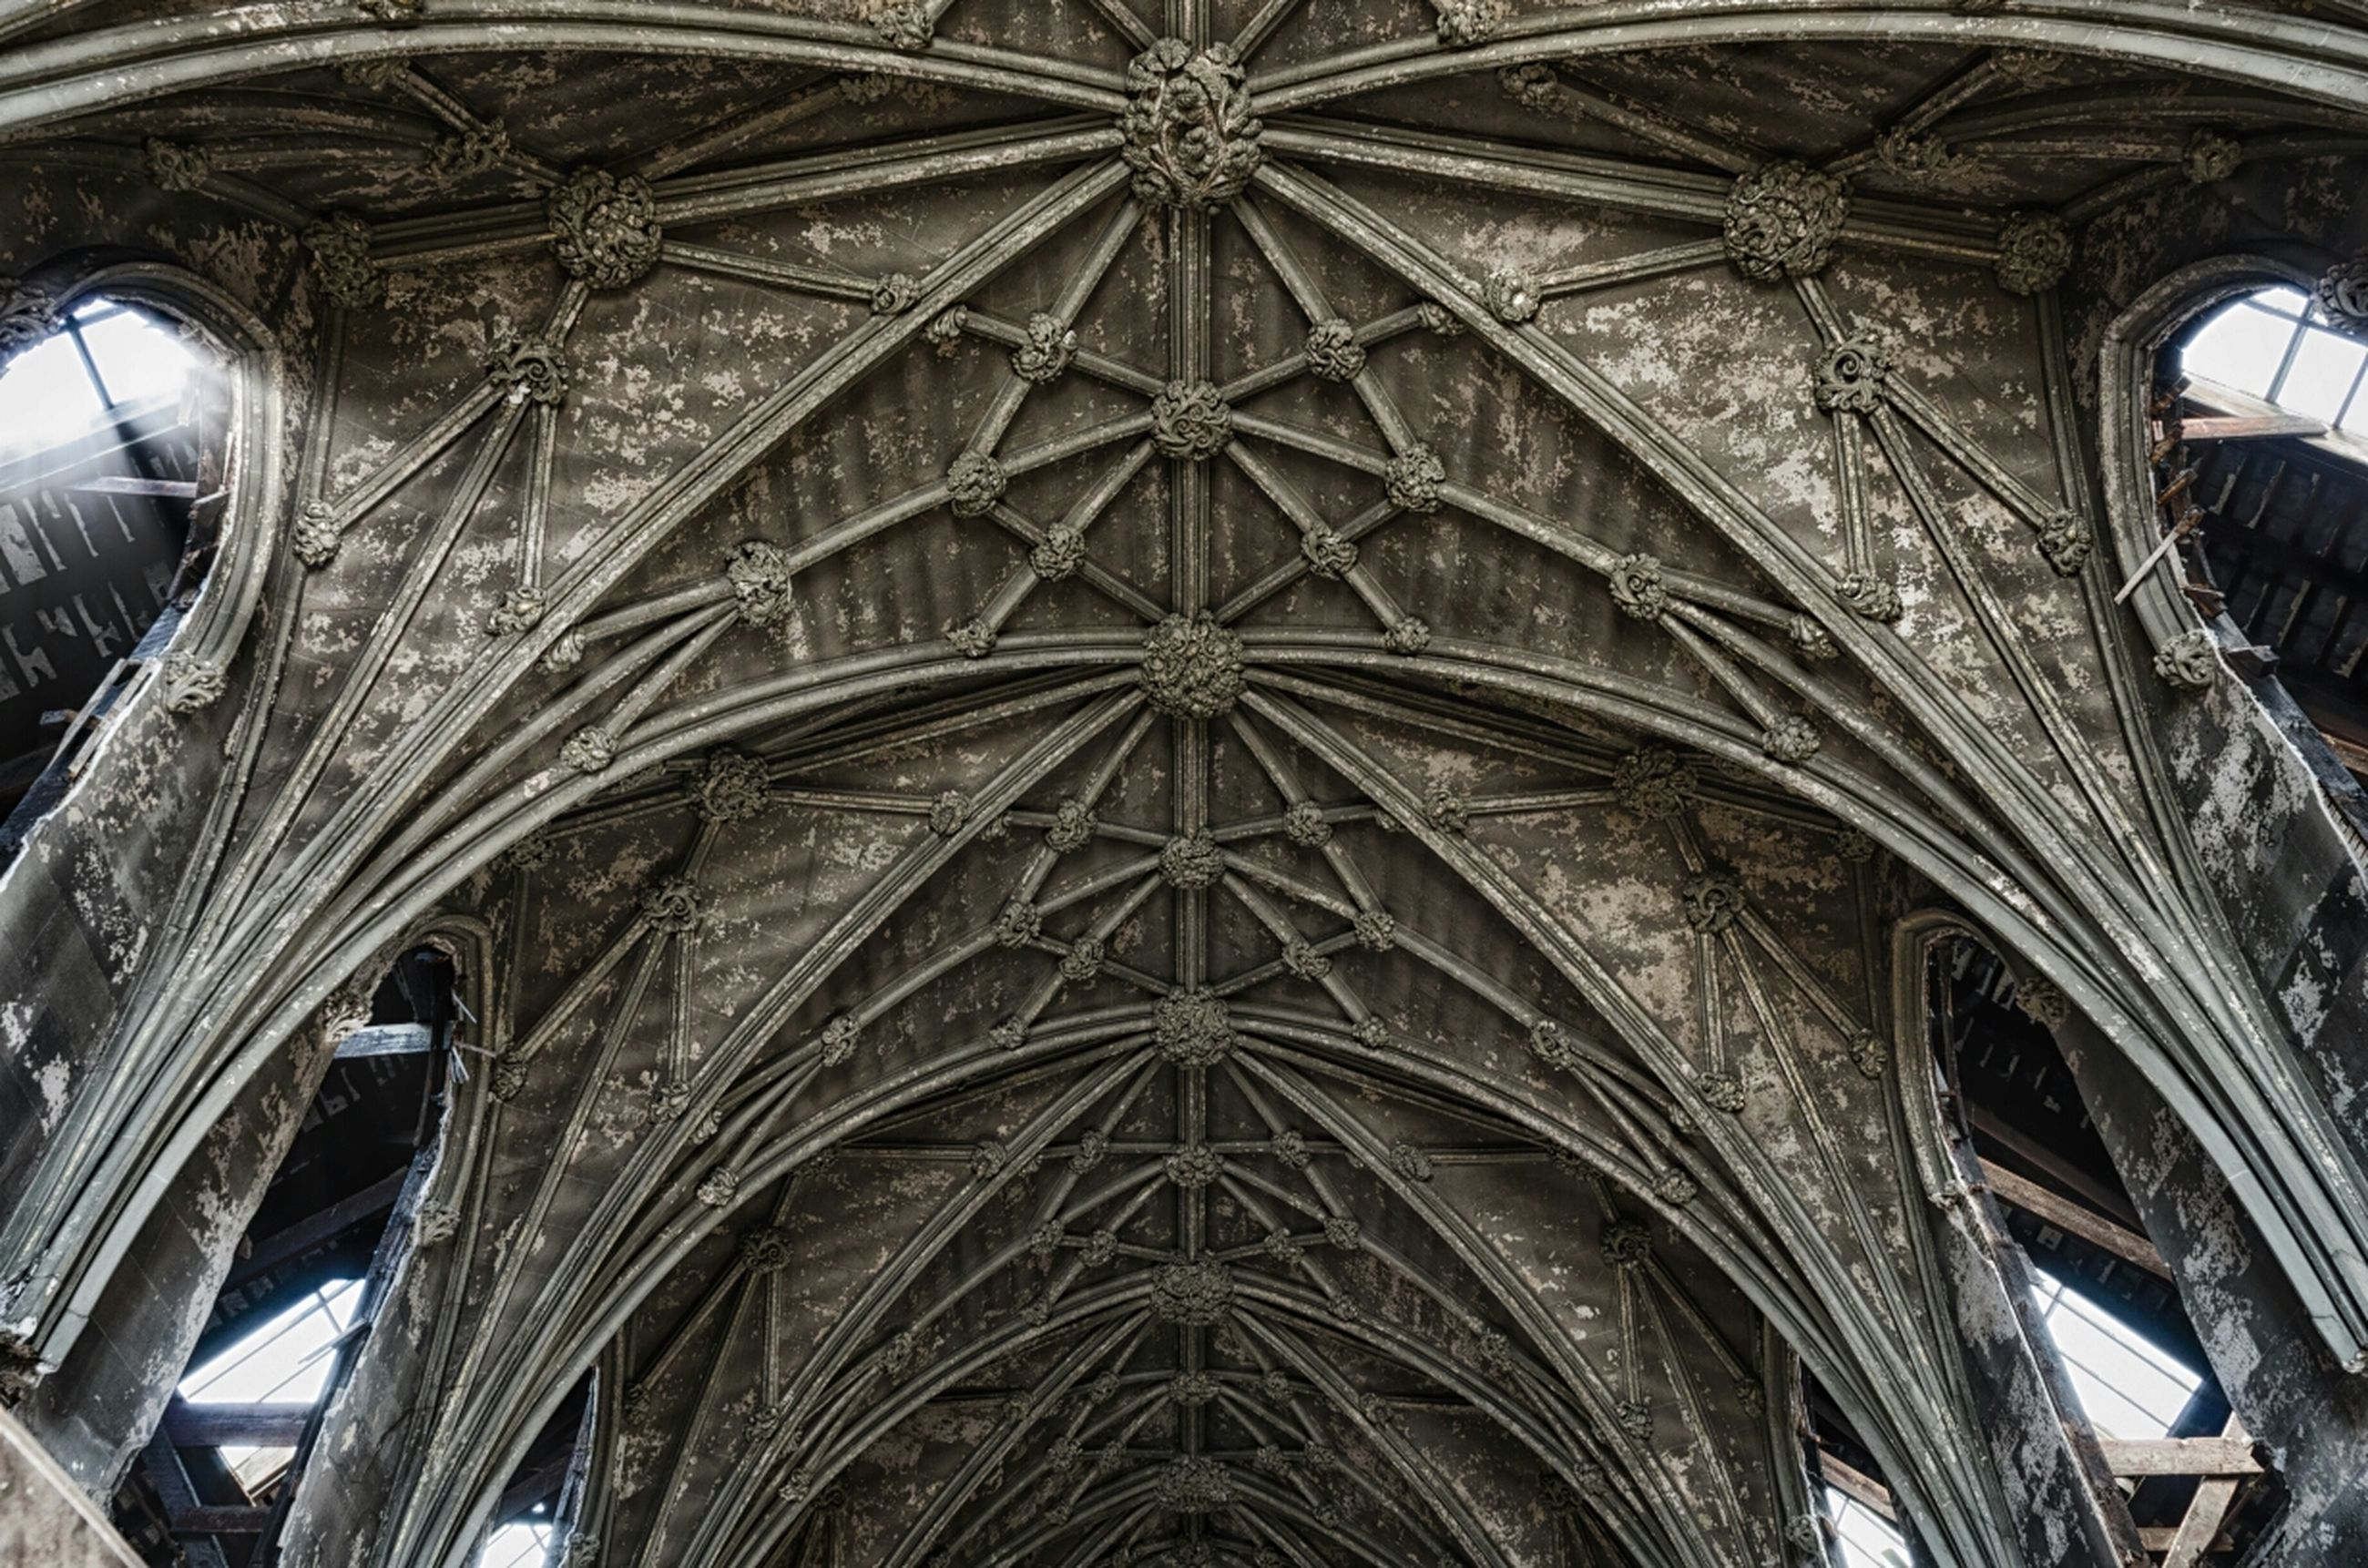 architecture, low angle view, built structure, place of worship, religion, arch, church, cathedral, spirituality, famous place, history, indoors, travel destinations, tourism, architectural feature, travel, ceiling, international landmark